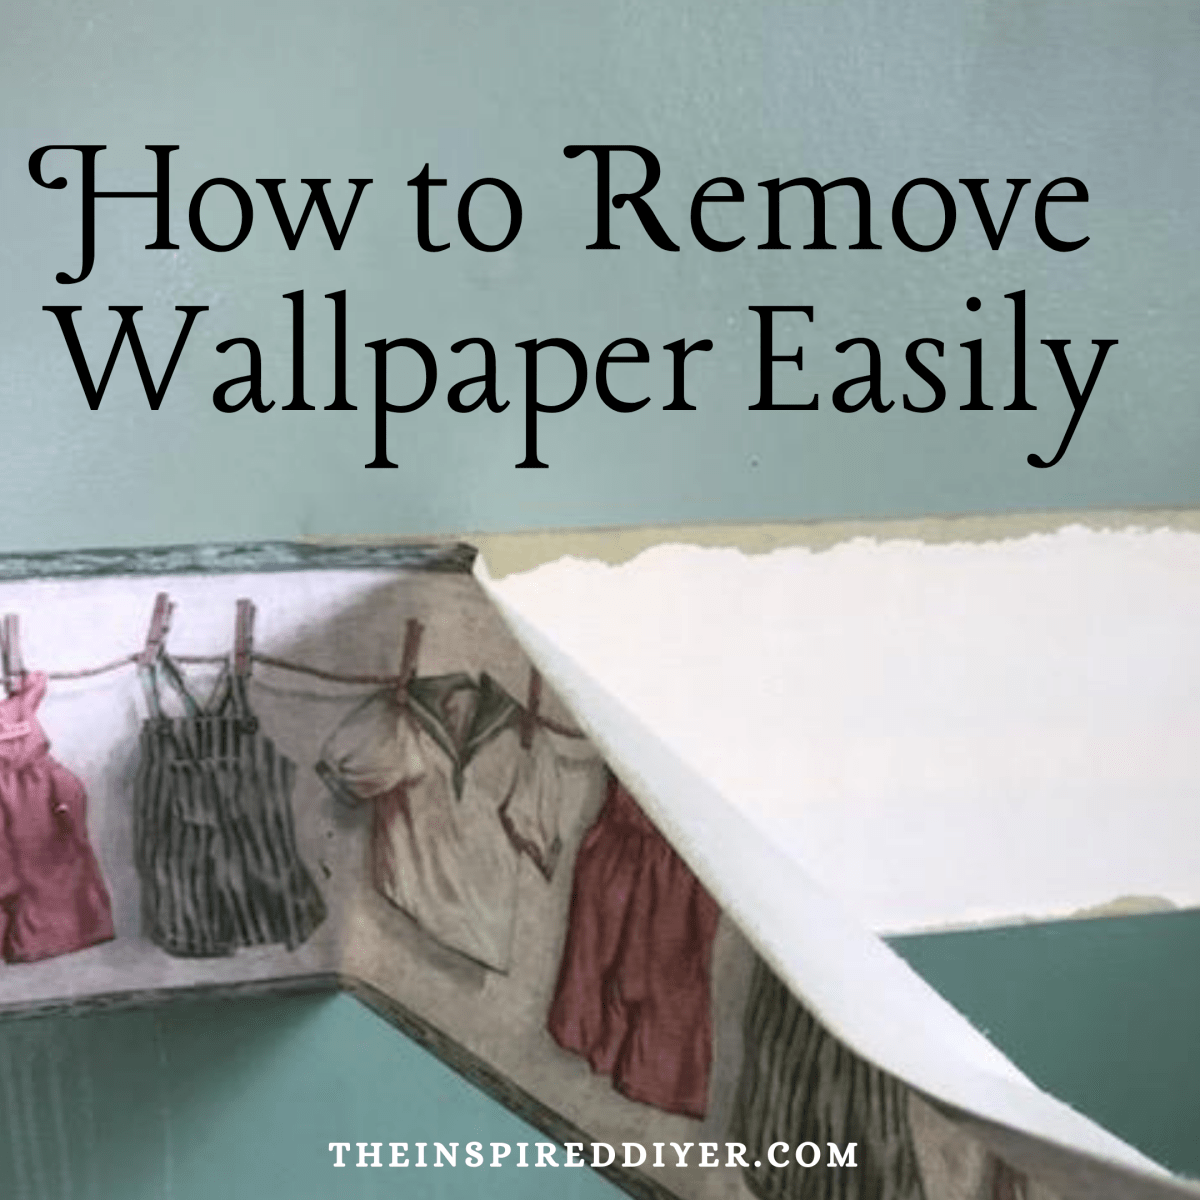 How To Remove Wallpaper Easily Removable Wallpaper Diy Wallpaper Removal Solution Removable Wallpaper